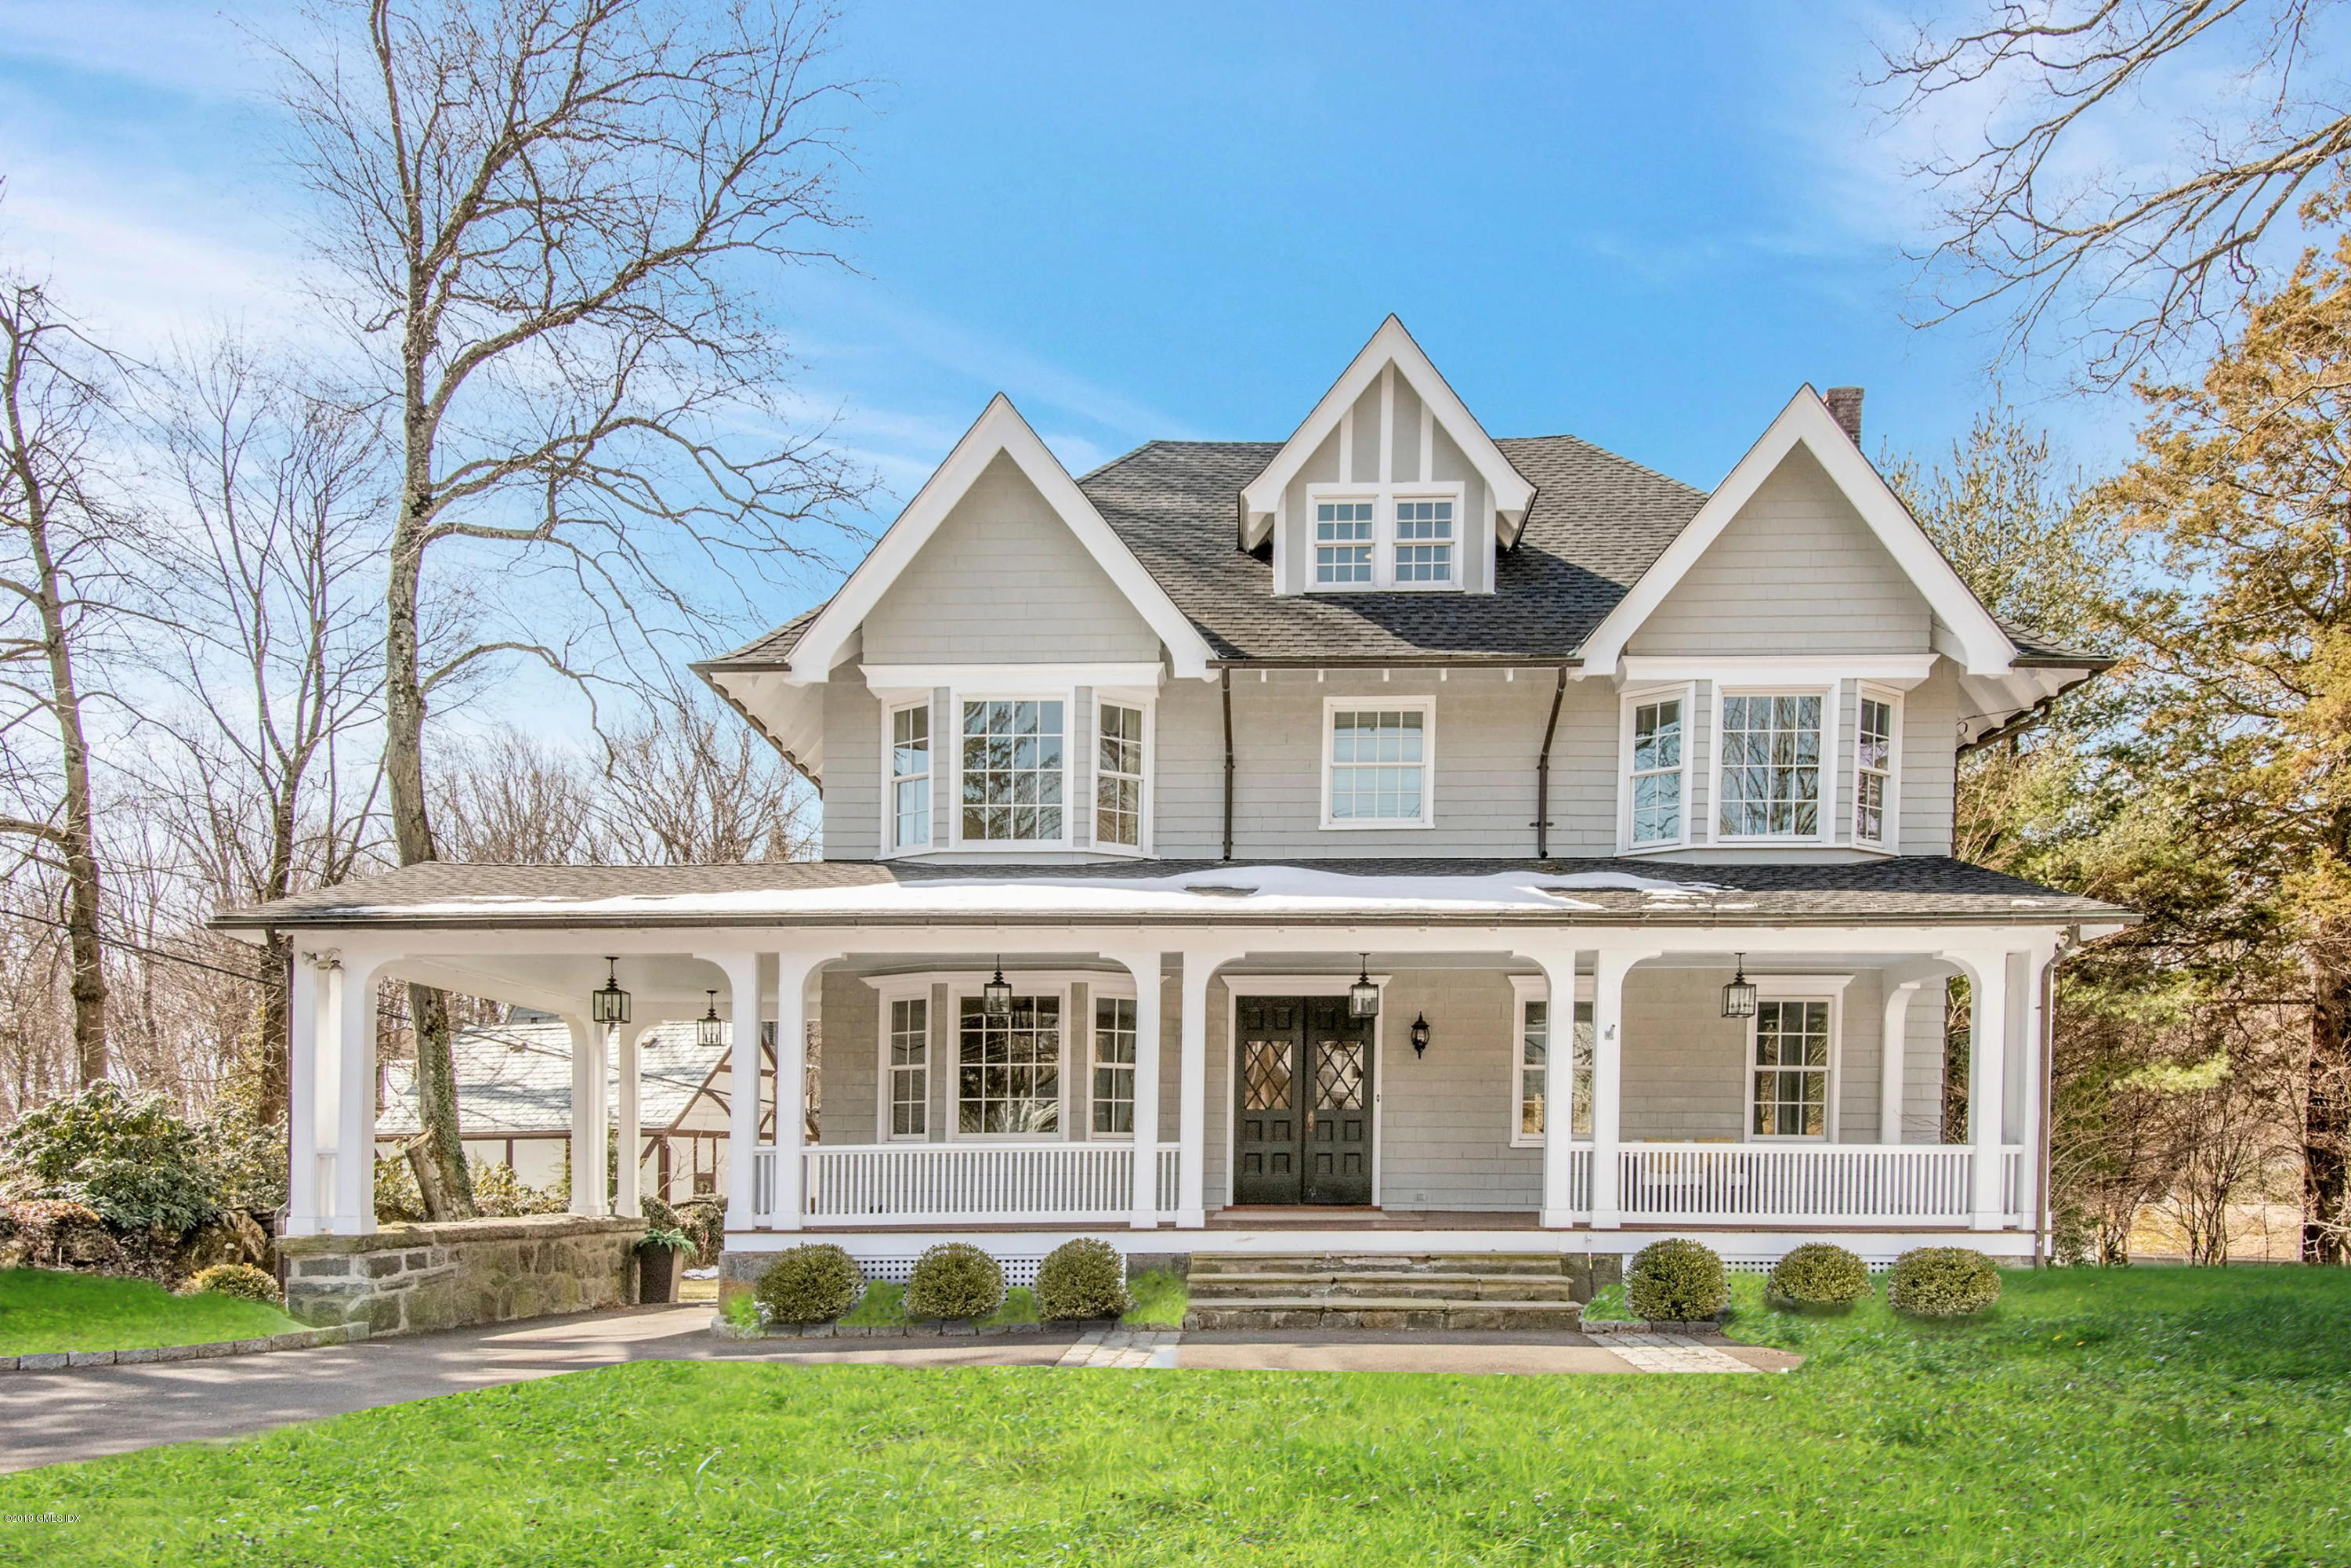 100 Brookside Drive,Greenwich,Connecticut 06831,5 Bedrooms Bedrooms,5 BathroomsBathrooms,Single family,Brookside,105827